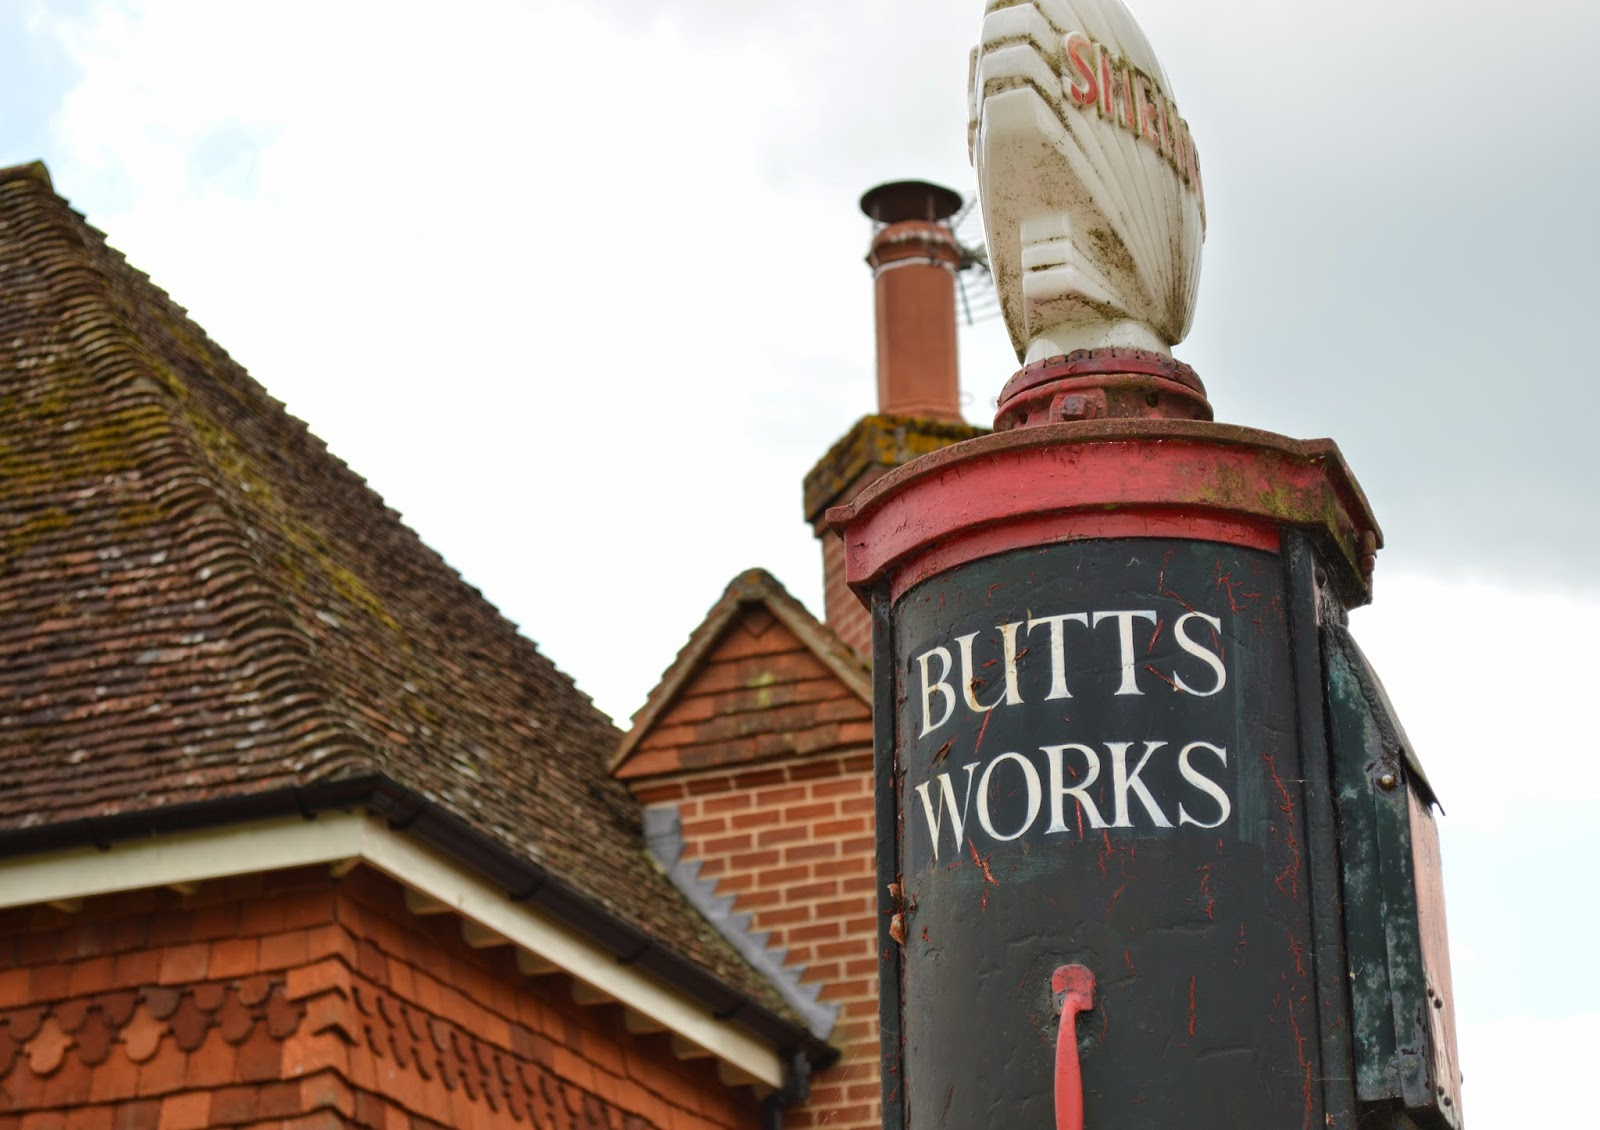 Wisborough, village, quaint, photo, photograph, charming, small, photo, photograph, traditional, cricket, church Chapel, St Peter Ad Vincula, old, butts works